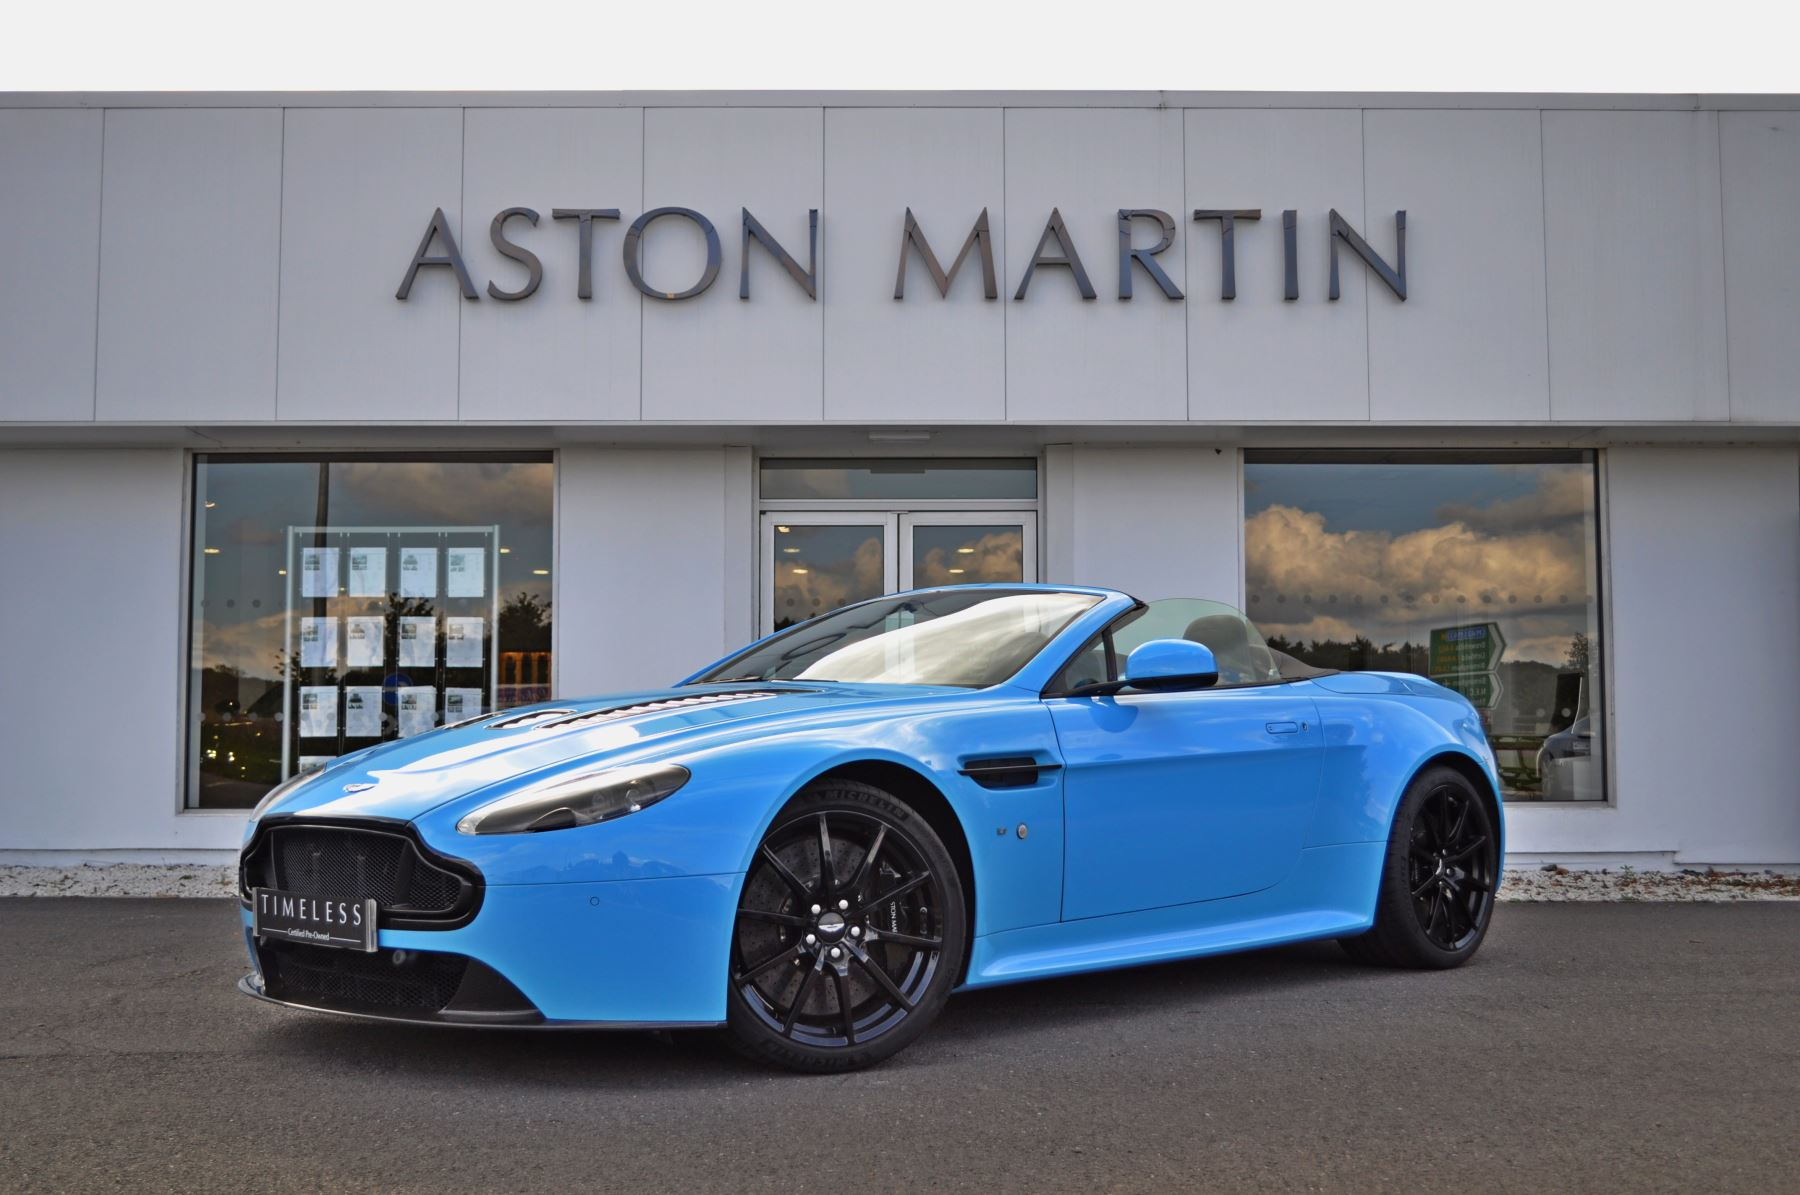 Aston Martin V12 Vantage S Roadster S 2dr Sportshift III 5.9 Automatic Roadster (2015.5) image